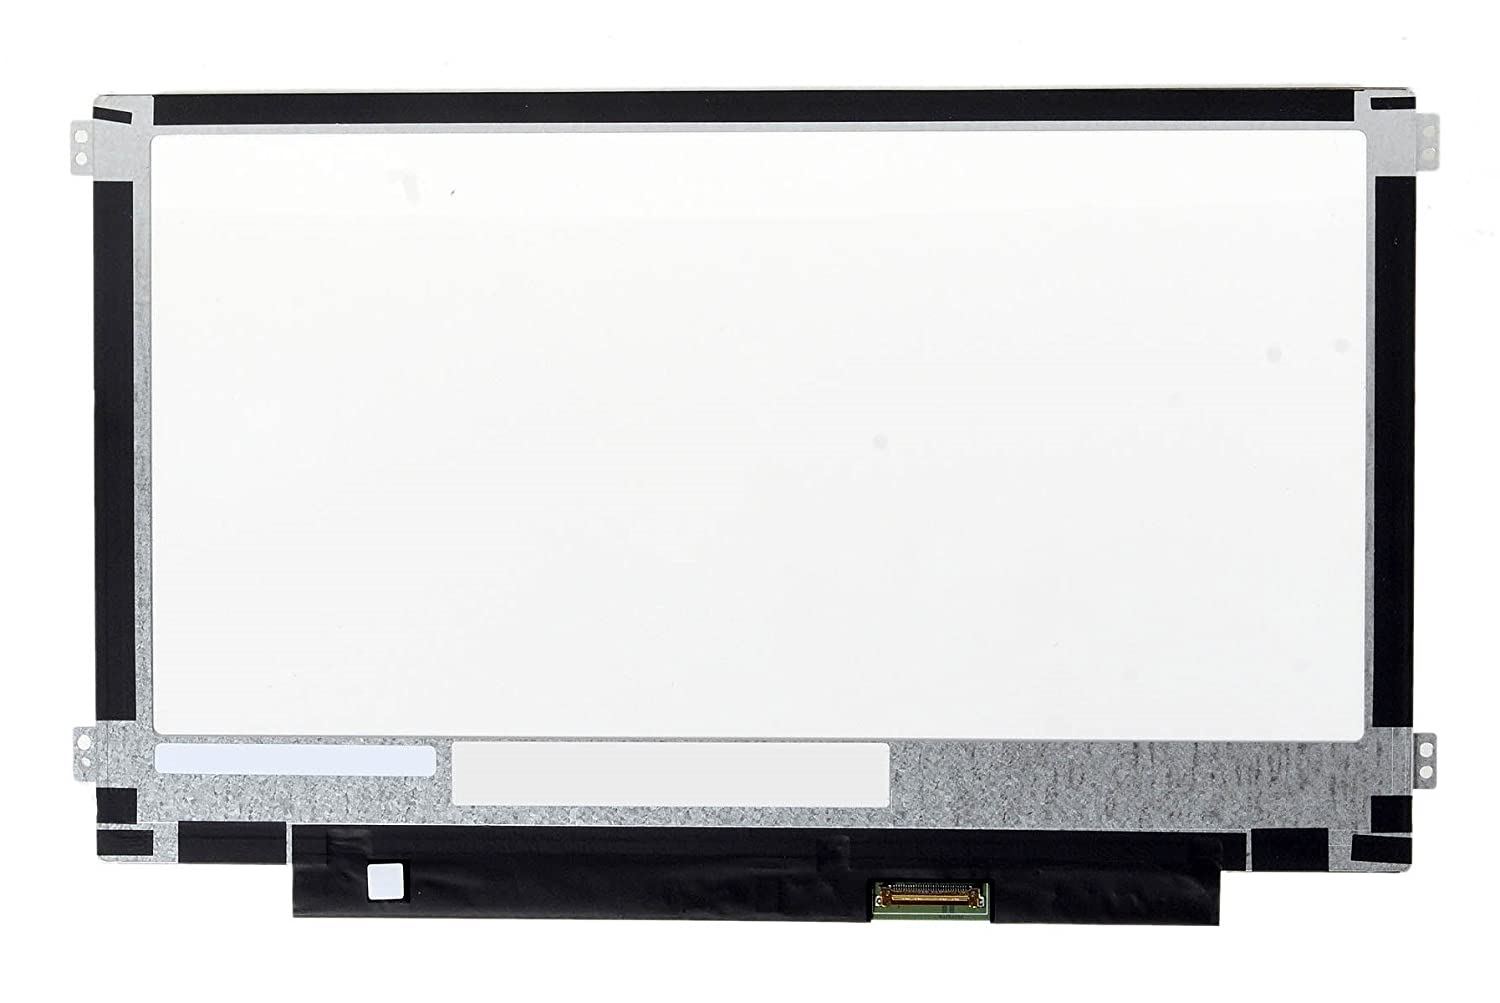 Acer Chromebook C720 New 11.6' WXGA HD LED LCD Replacement Screen 30PIN MATTE Fits: C720-22848, C720-2103, C720-2420, C720-2800, C720-2802, C720-2844 LED-1366-768-11.6-(GT)